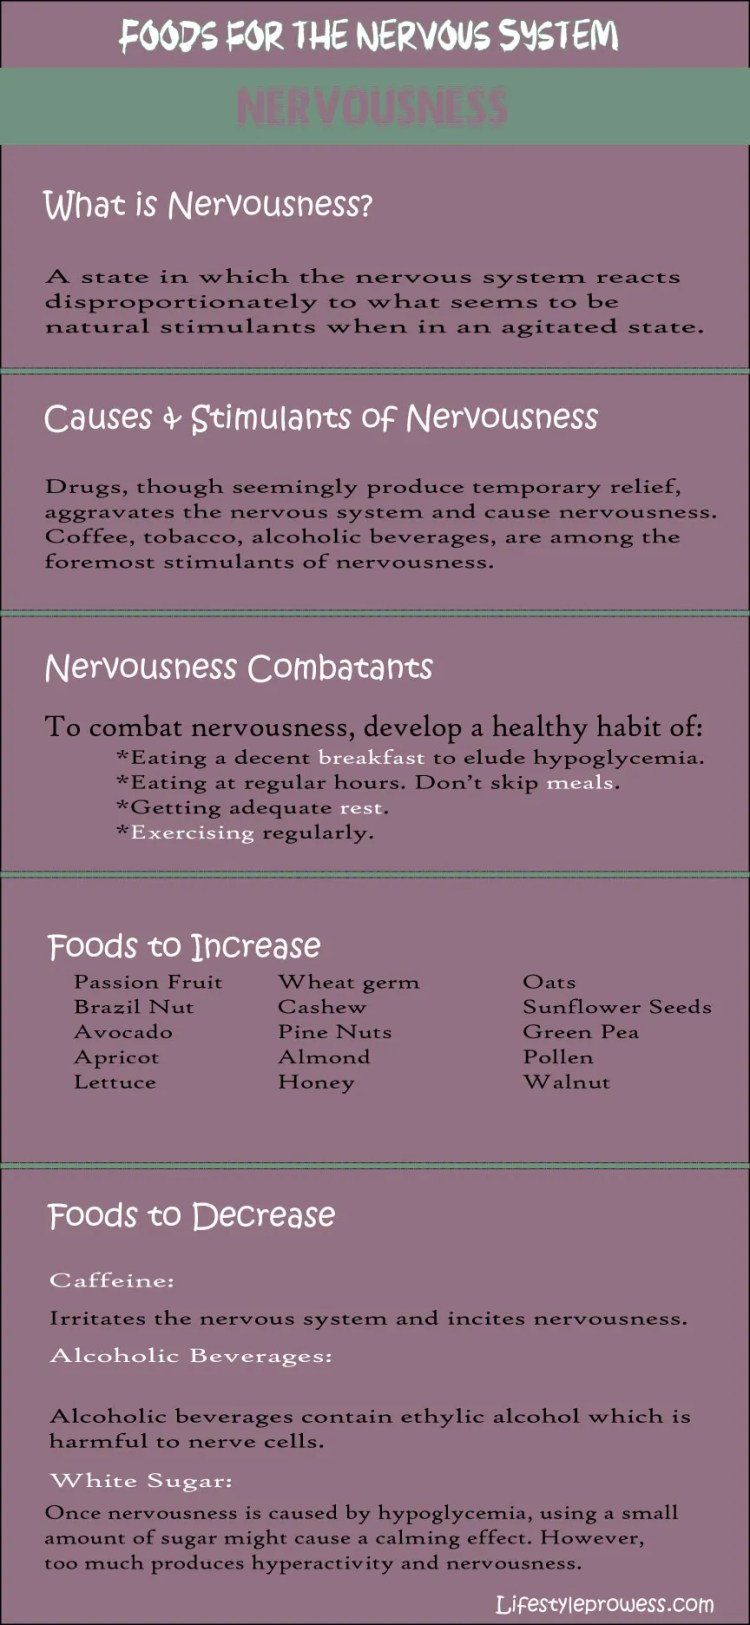 Nervousness-Foods-For-The-Nervous-System